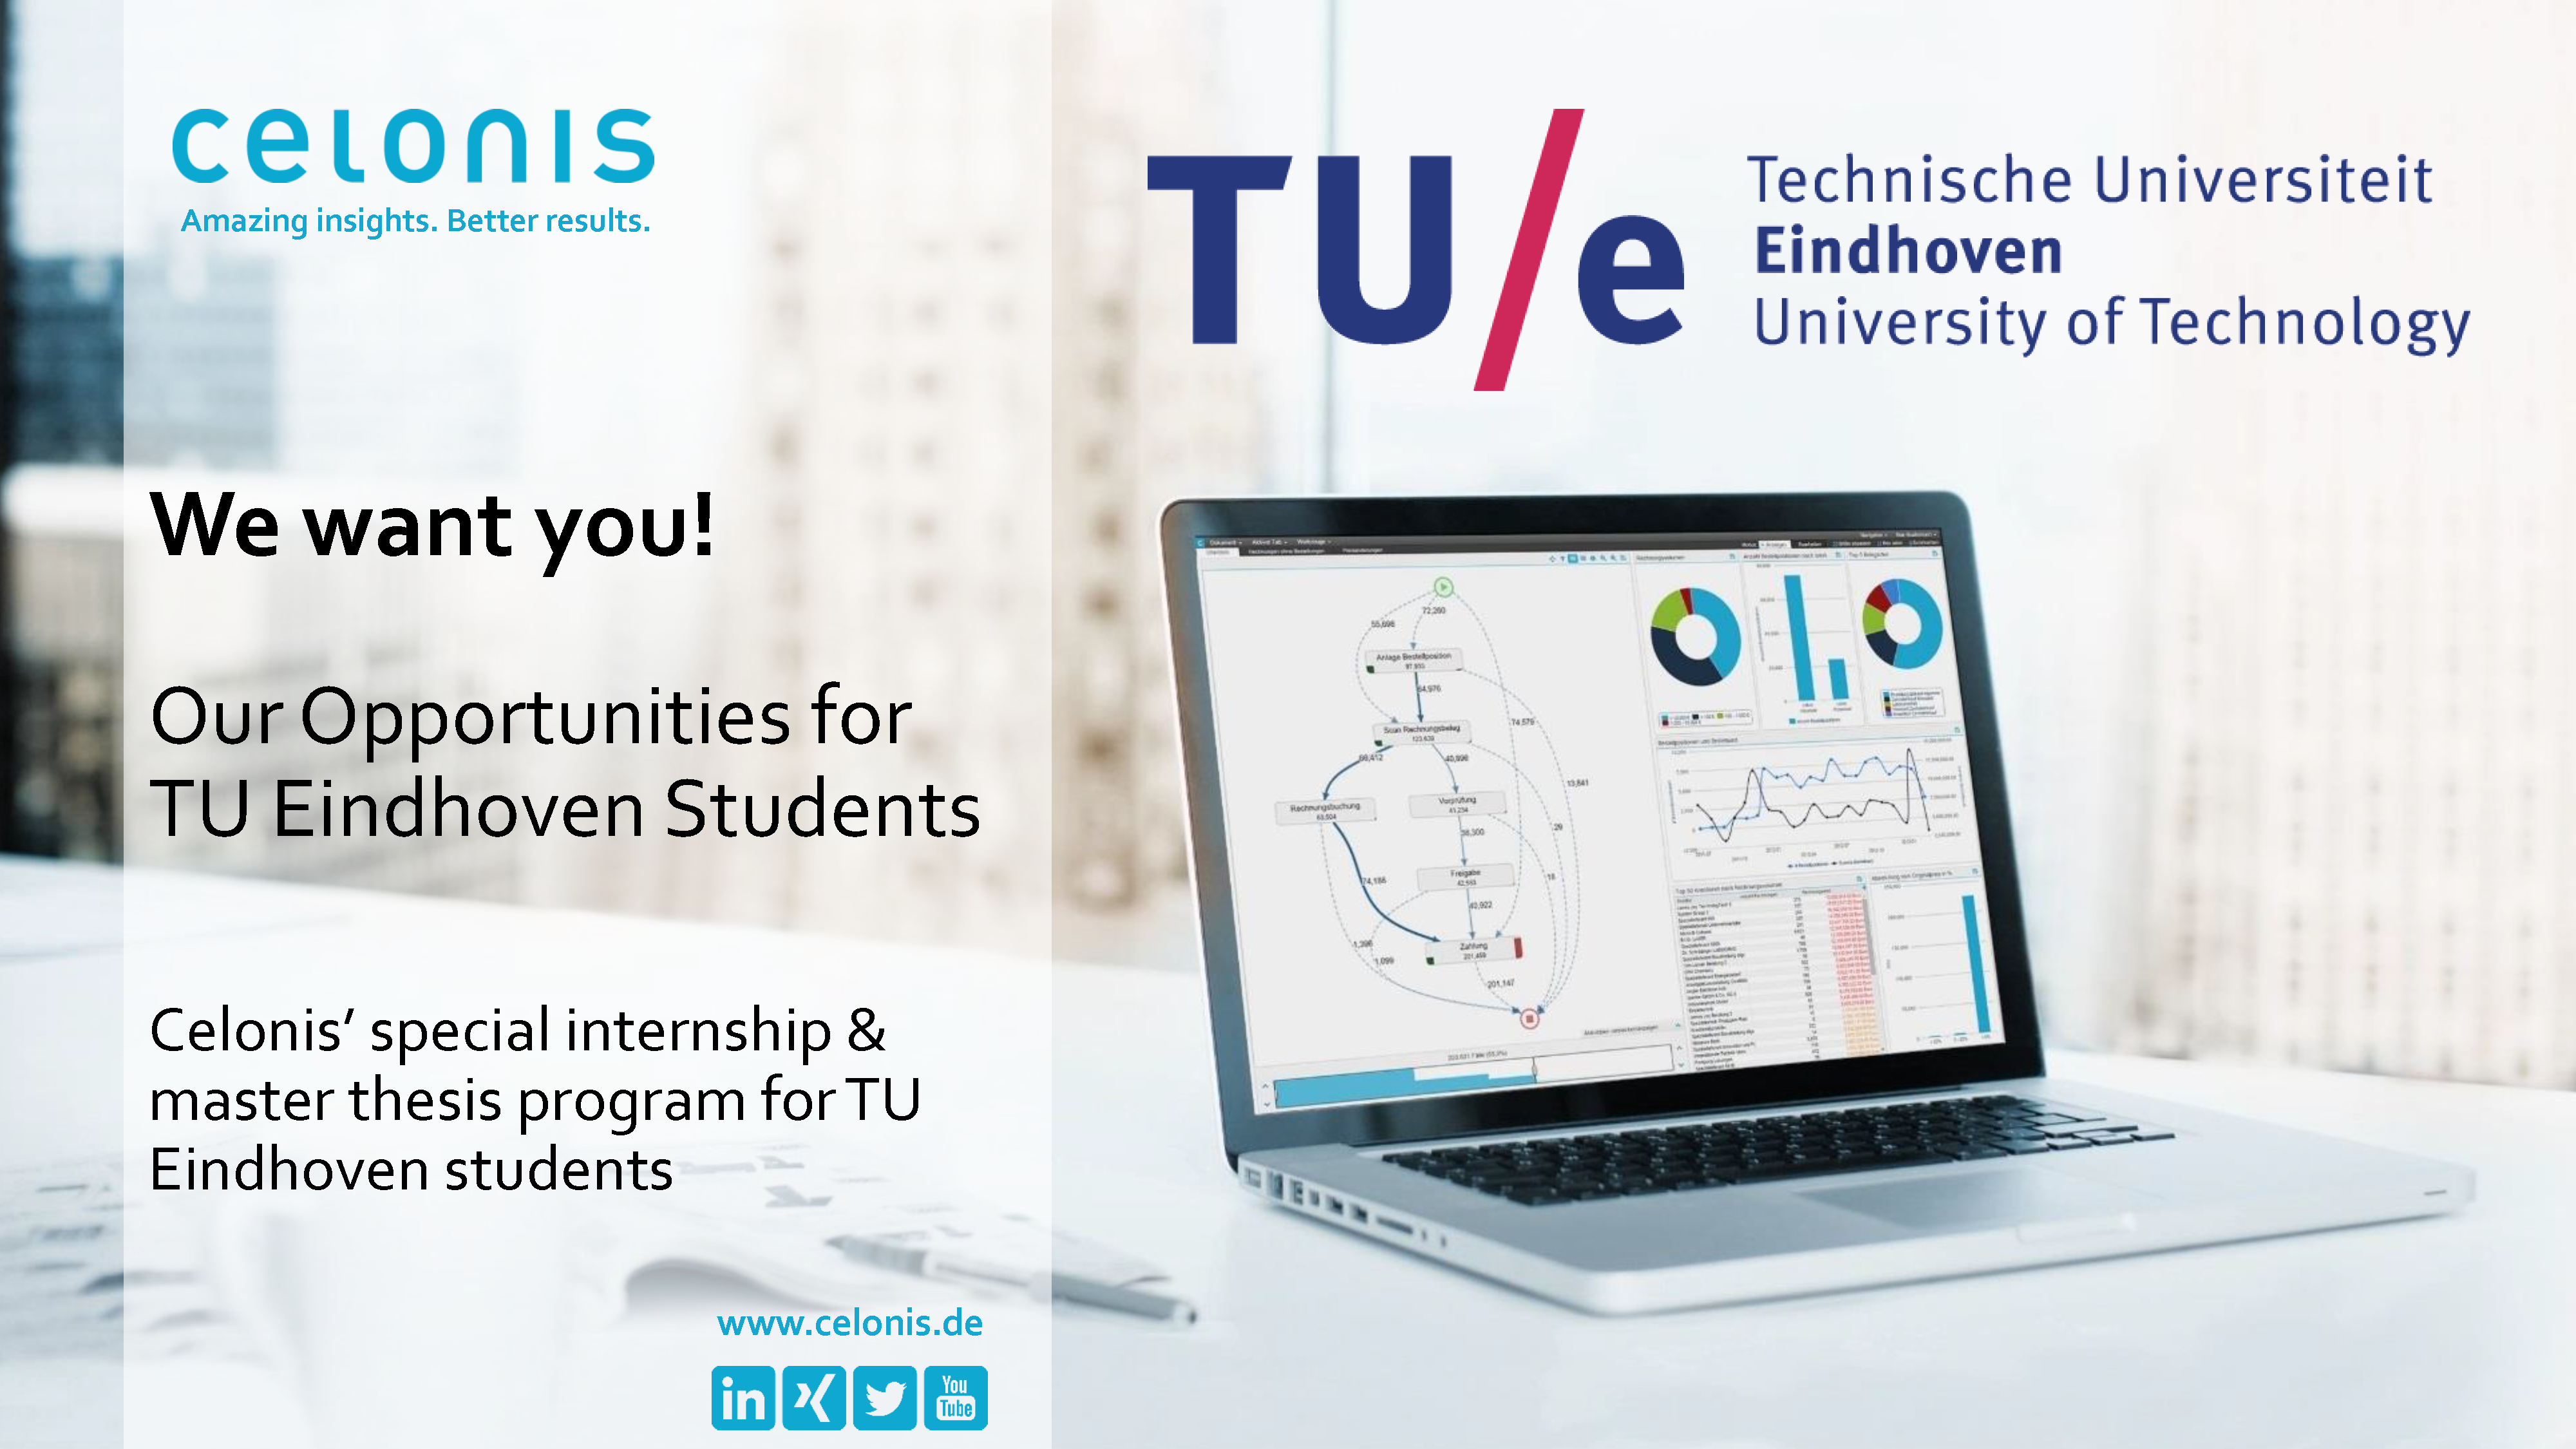 assignments:celonis_internship_master_thesis_program_for_tu_eindhoven_students.png